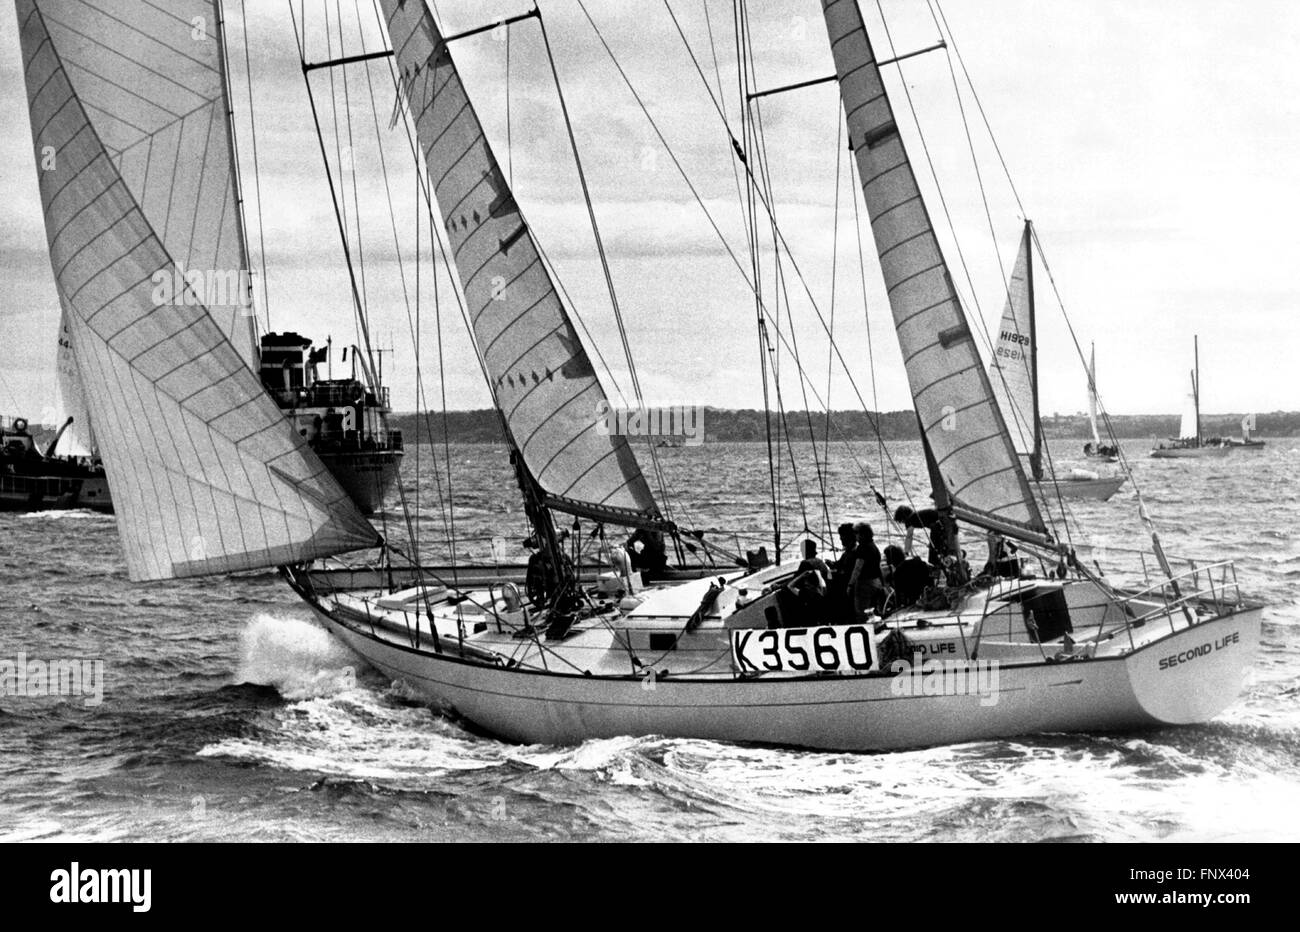 AJAX NEWS PHOTOS. 1973. PORTSMOUTH, ENGLAND. - WHITBREAD ROUND THE WORLD RACE - SECOND LIFE (GB) AN OCEAN 71 KETCH, - Stock Image